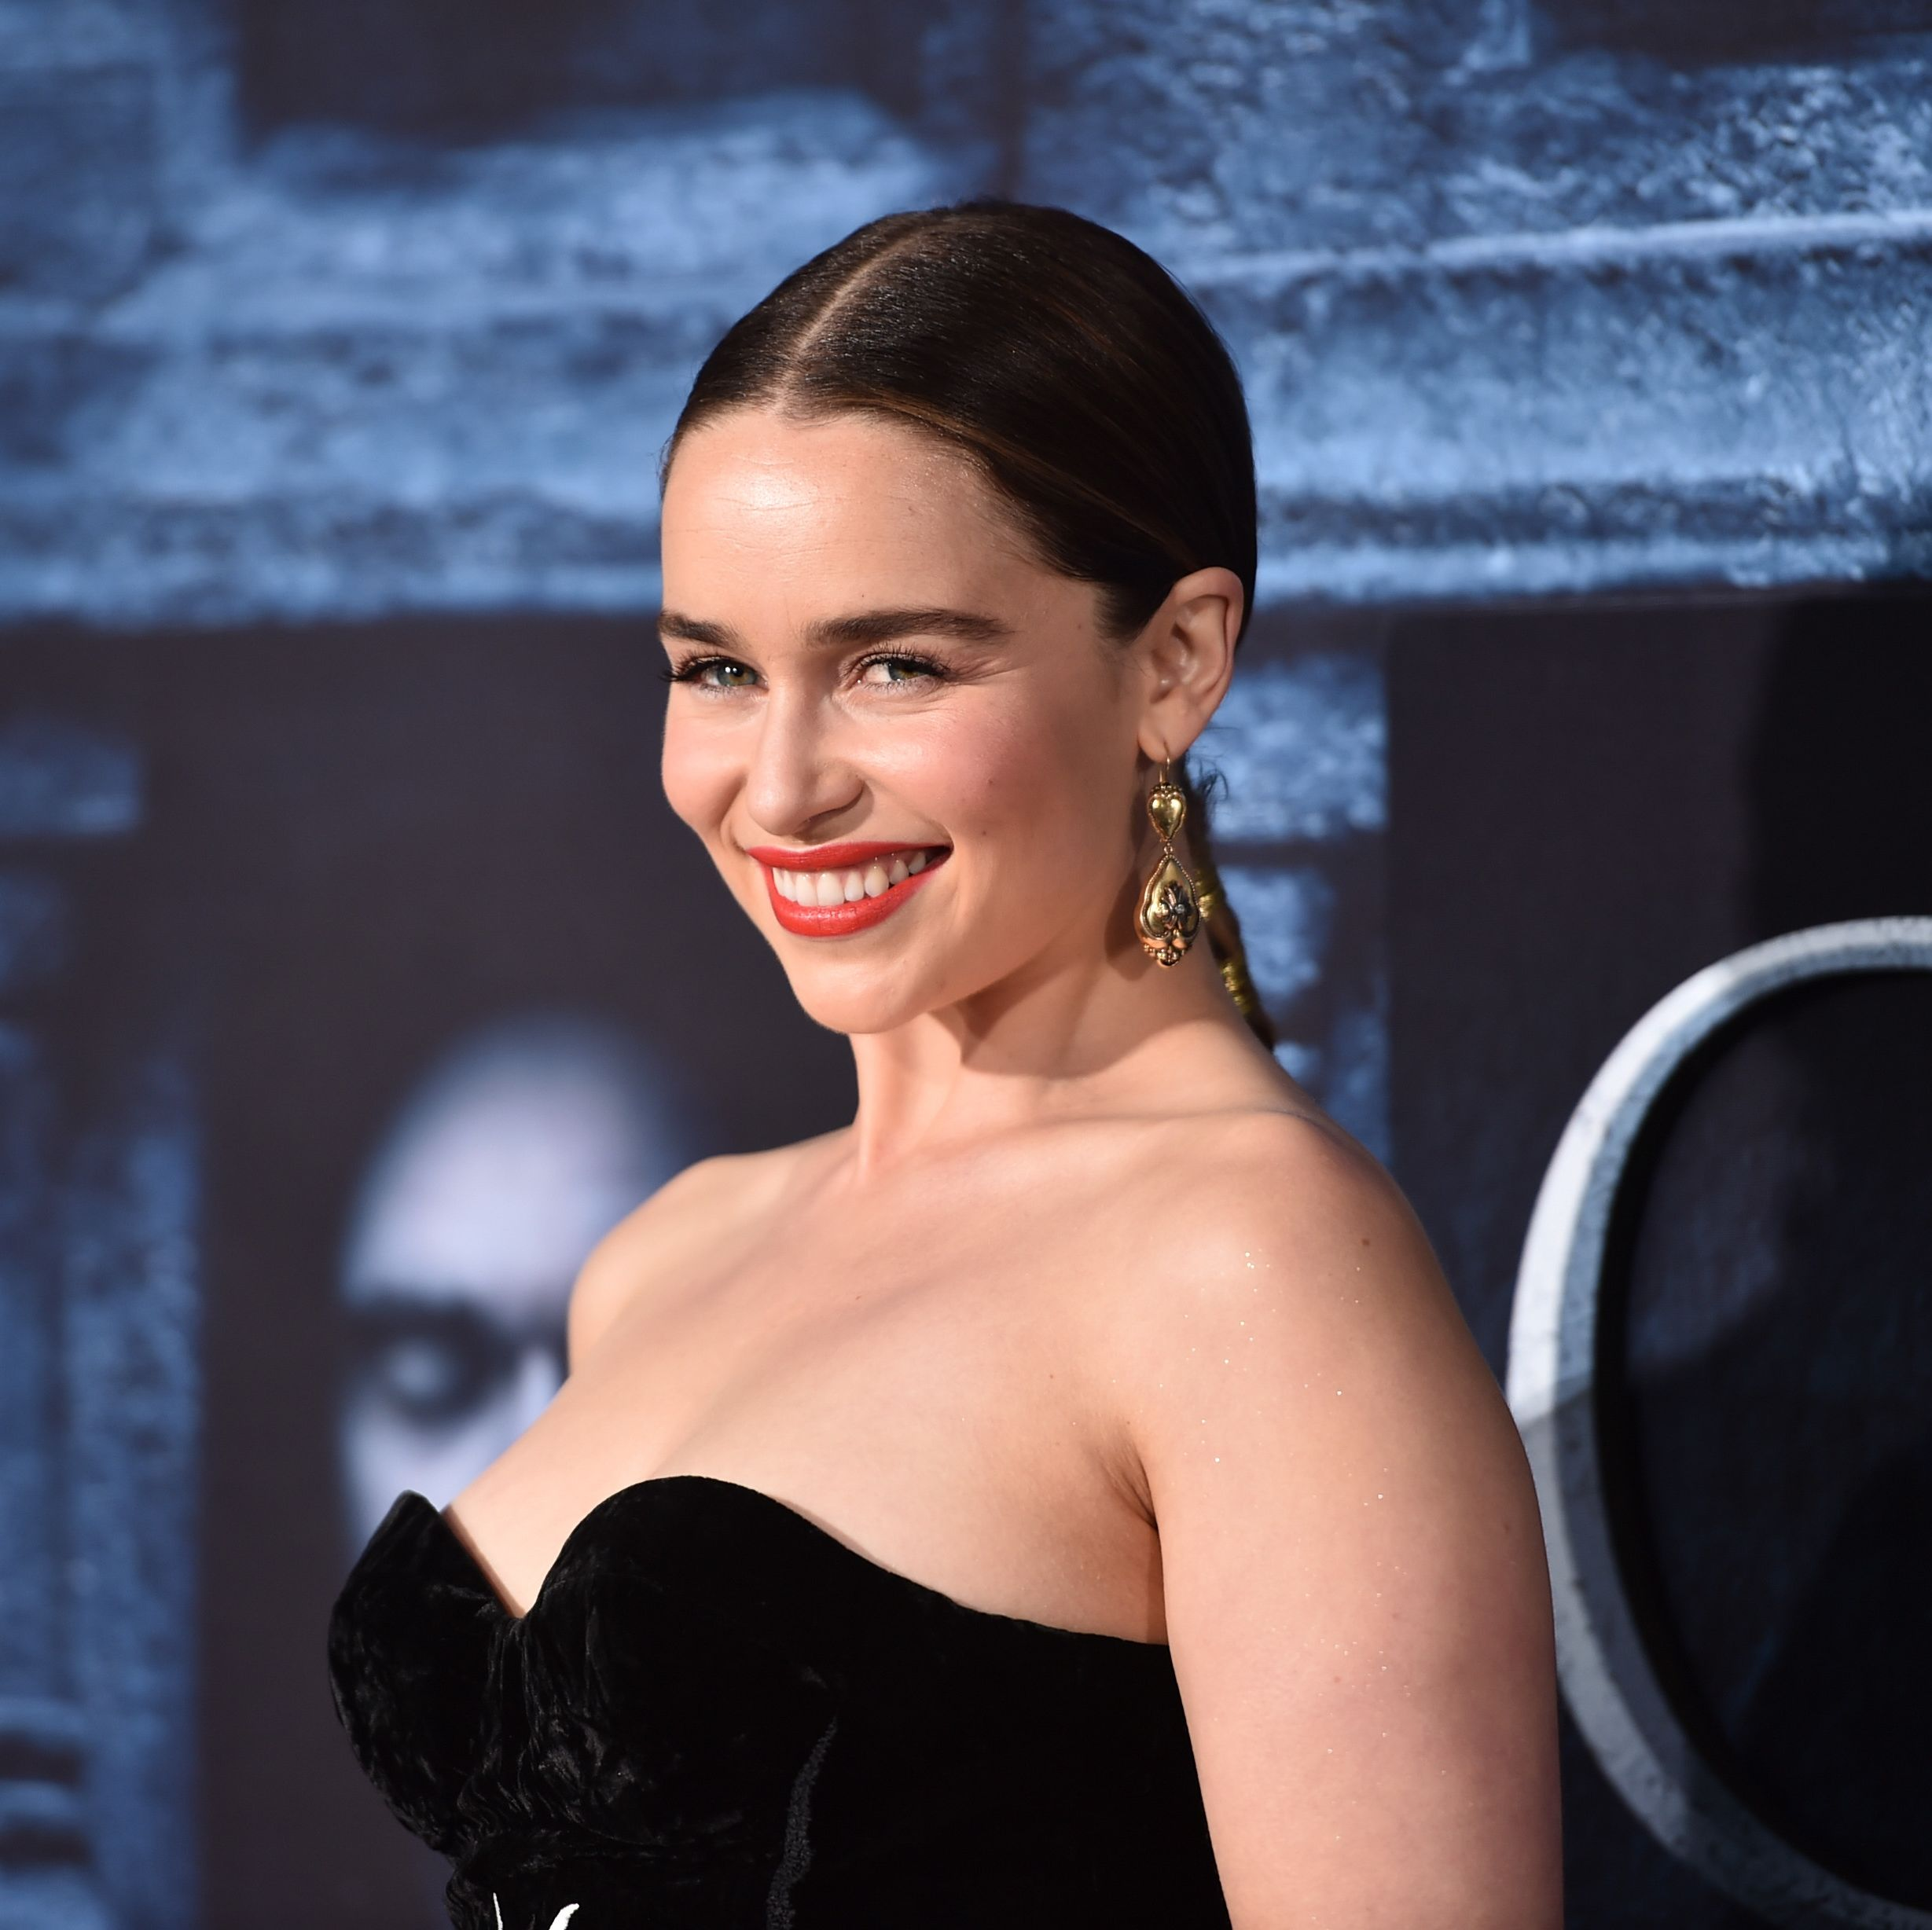 Emilia Clarke's Net Worth Is Bonkers Thanks To 'Game of Thrones'